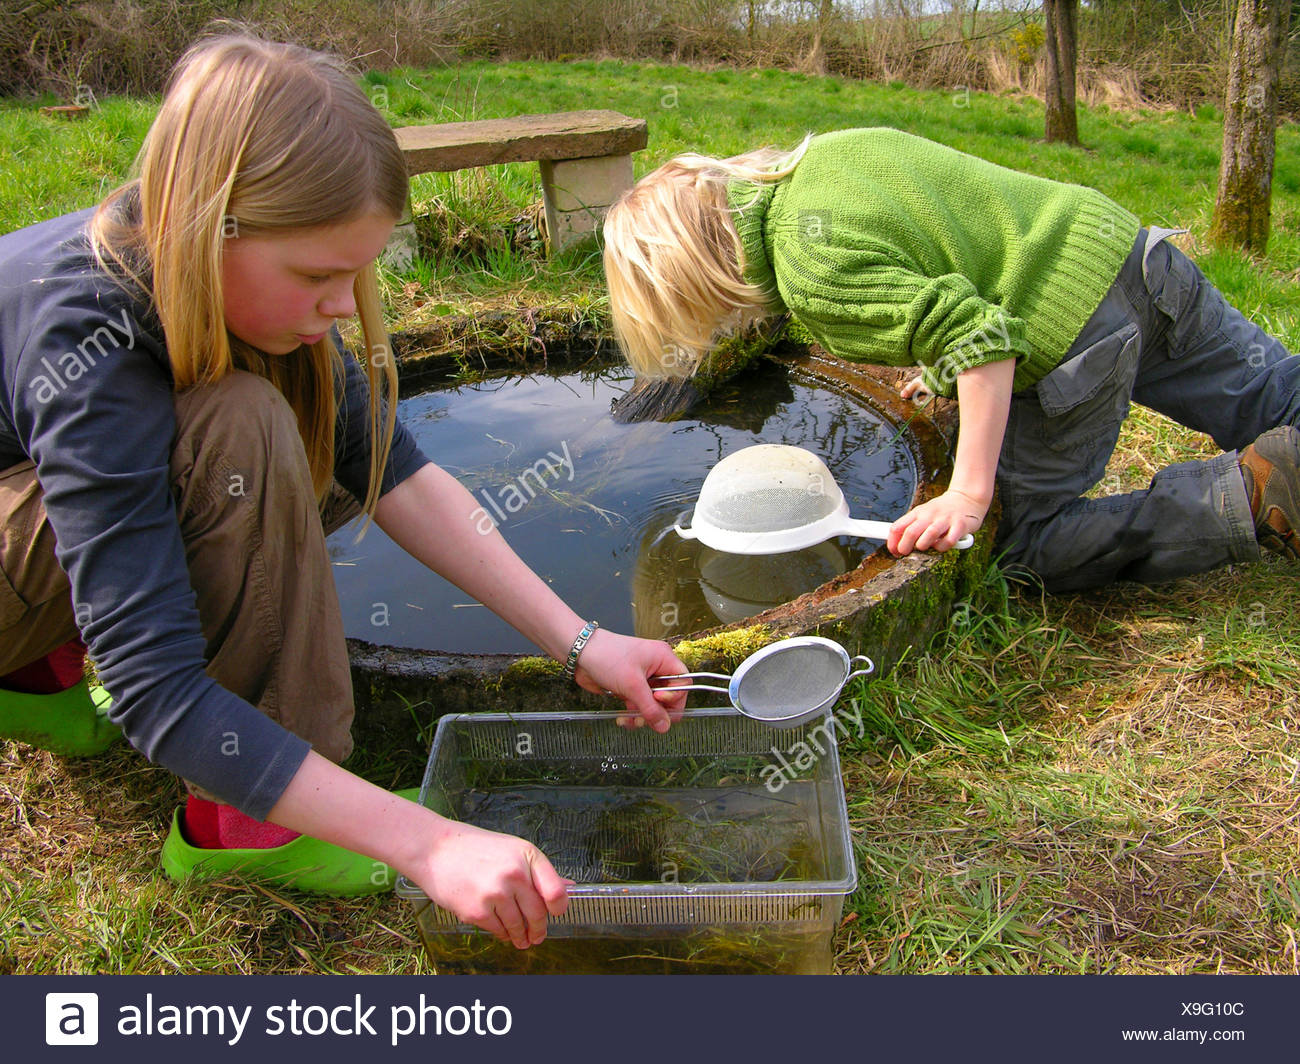 children catching water animals with cullenders in a garden pond, Germany Stock Photo